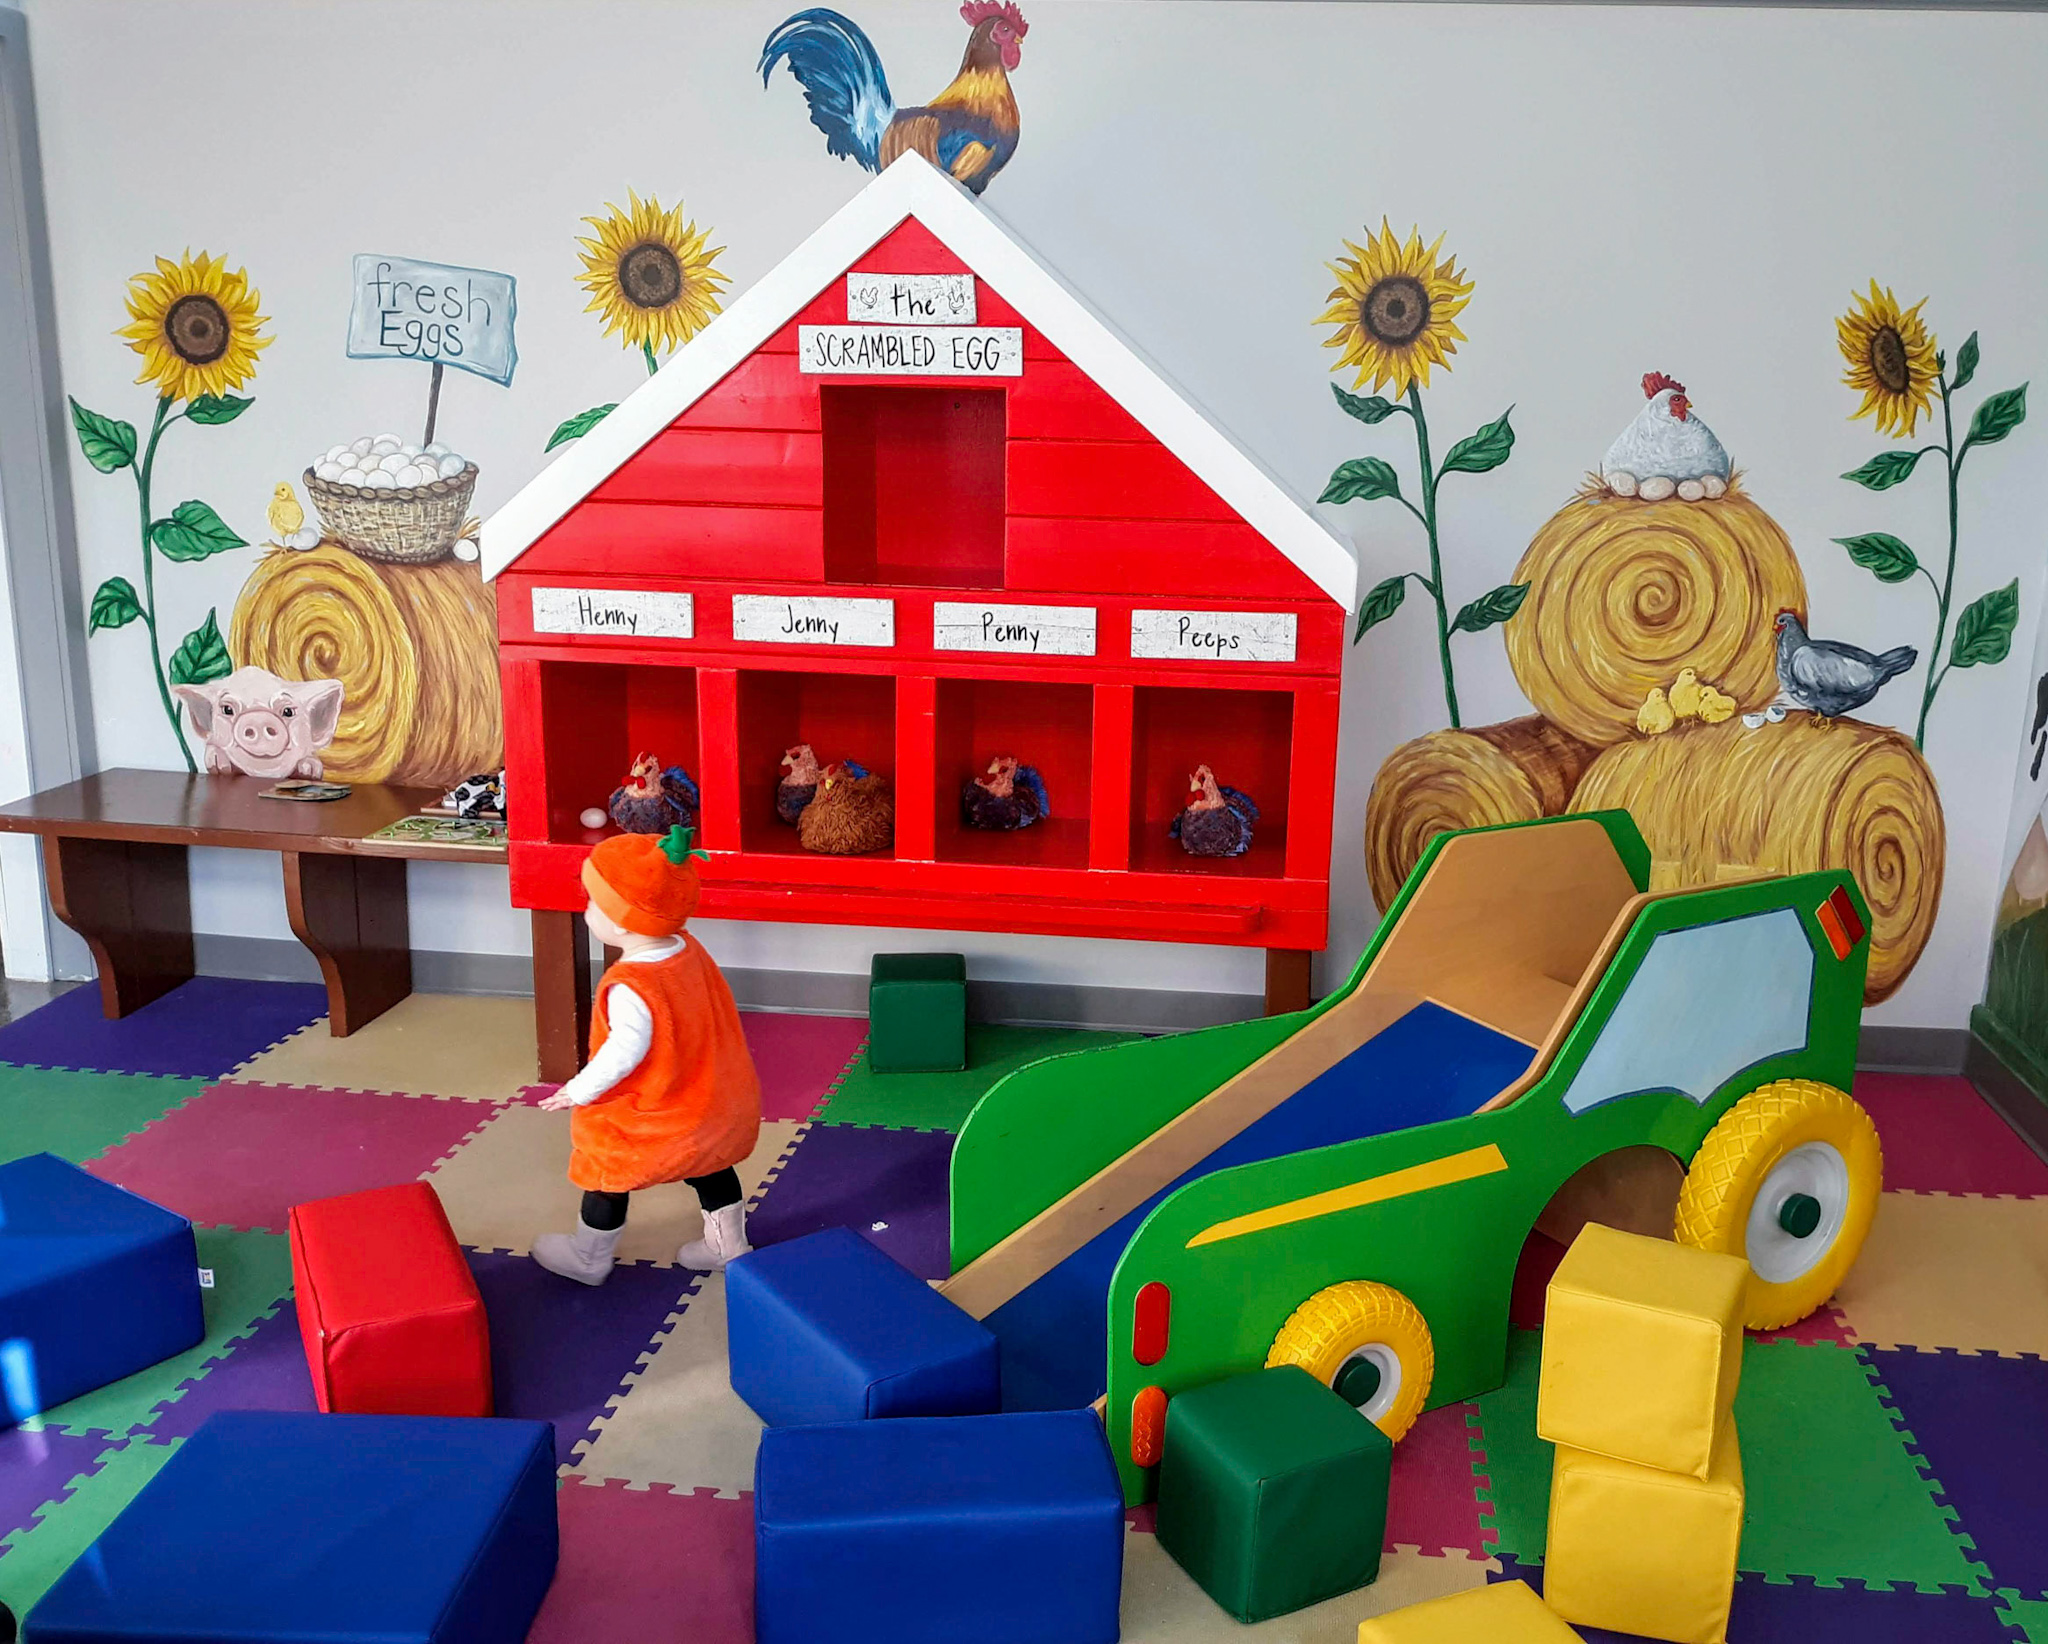 toddler in children's play area